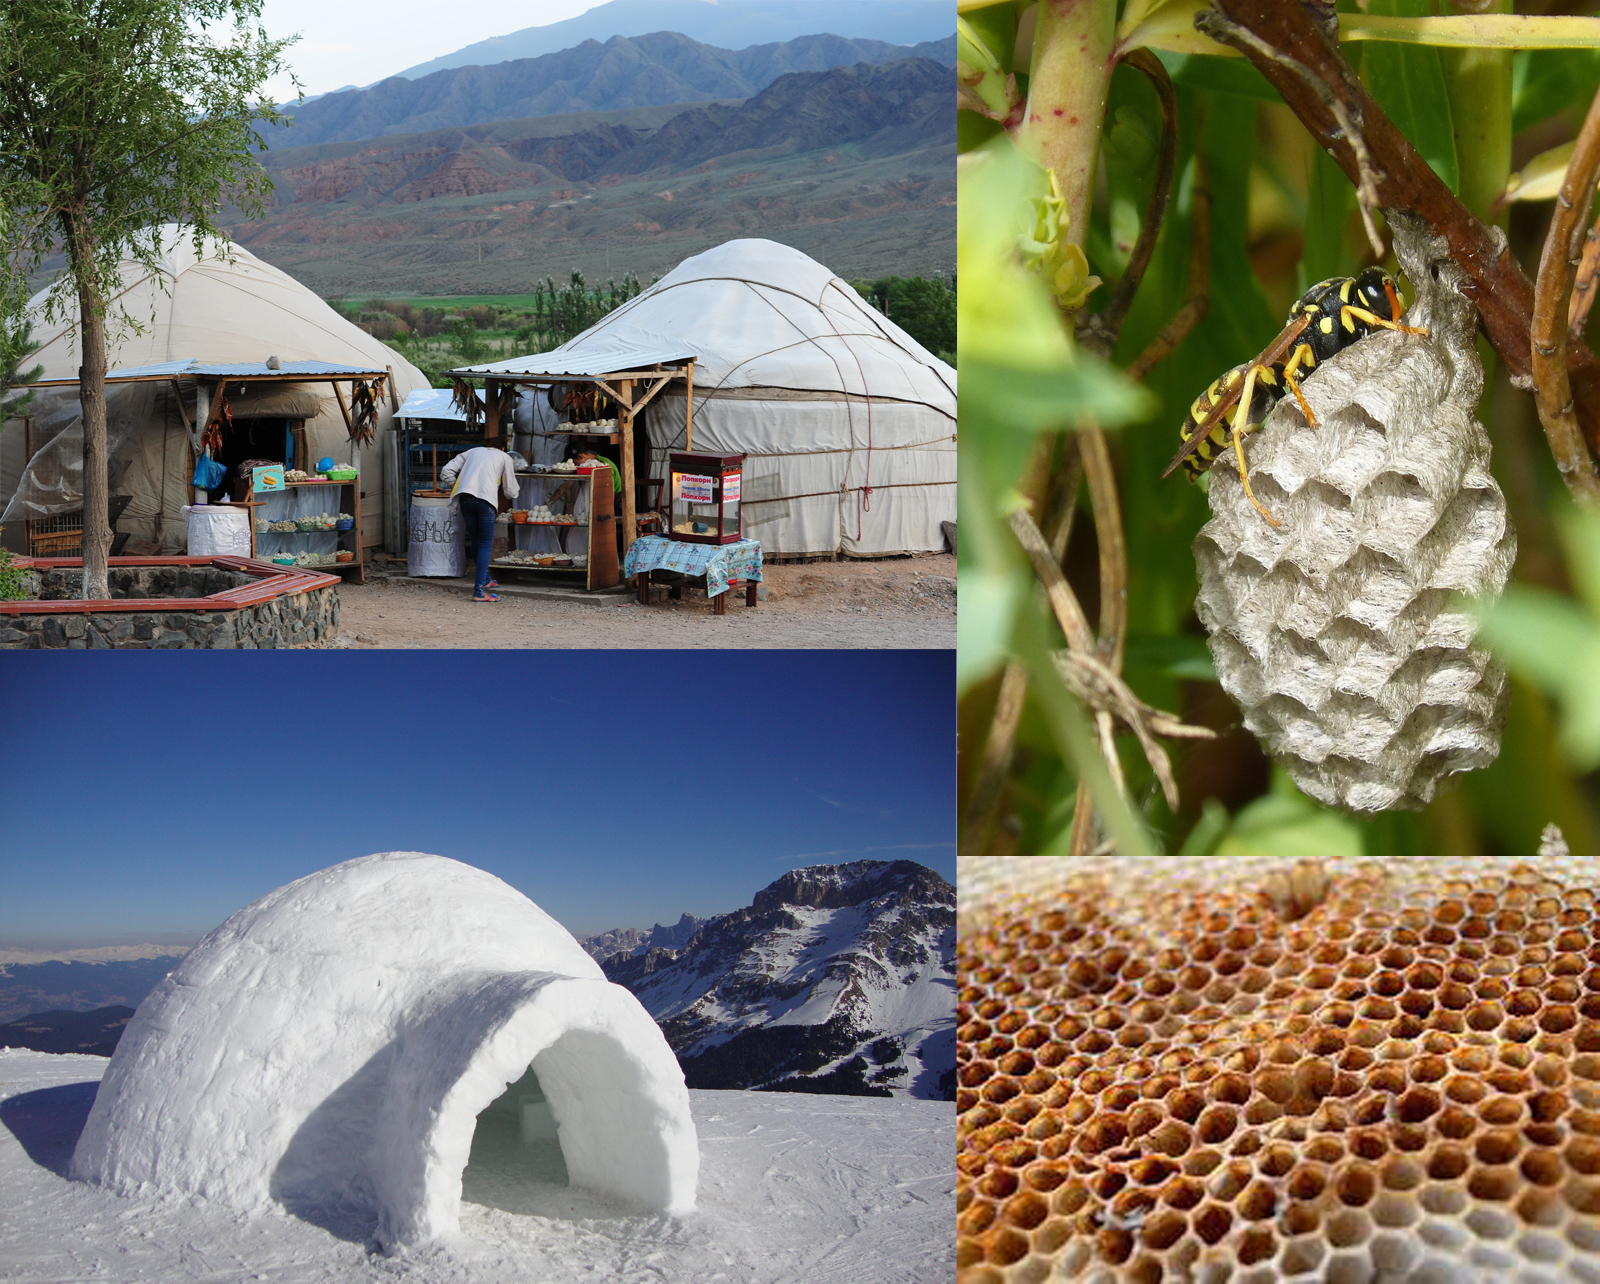 STRUCTURAL INSPIRATION FROM NATURE - Instead of the familiar tents and teepees currently in the market today, the Nomad Shelter takes mimics the shapes of nature's structures